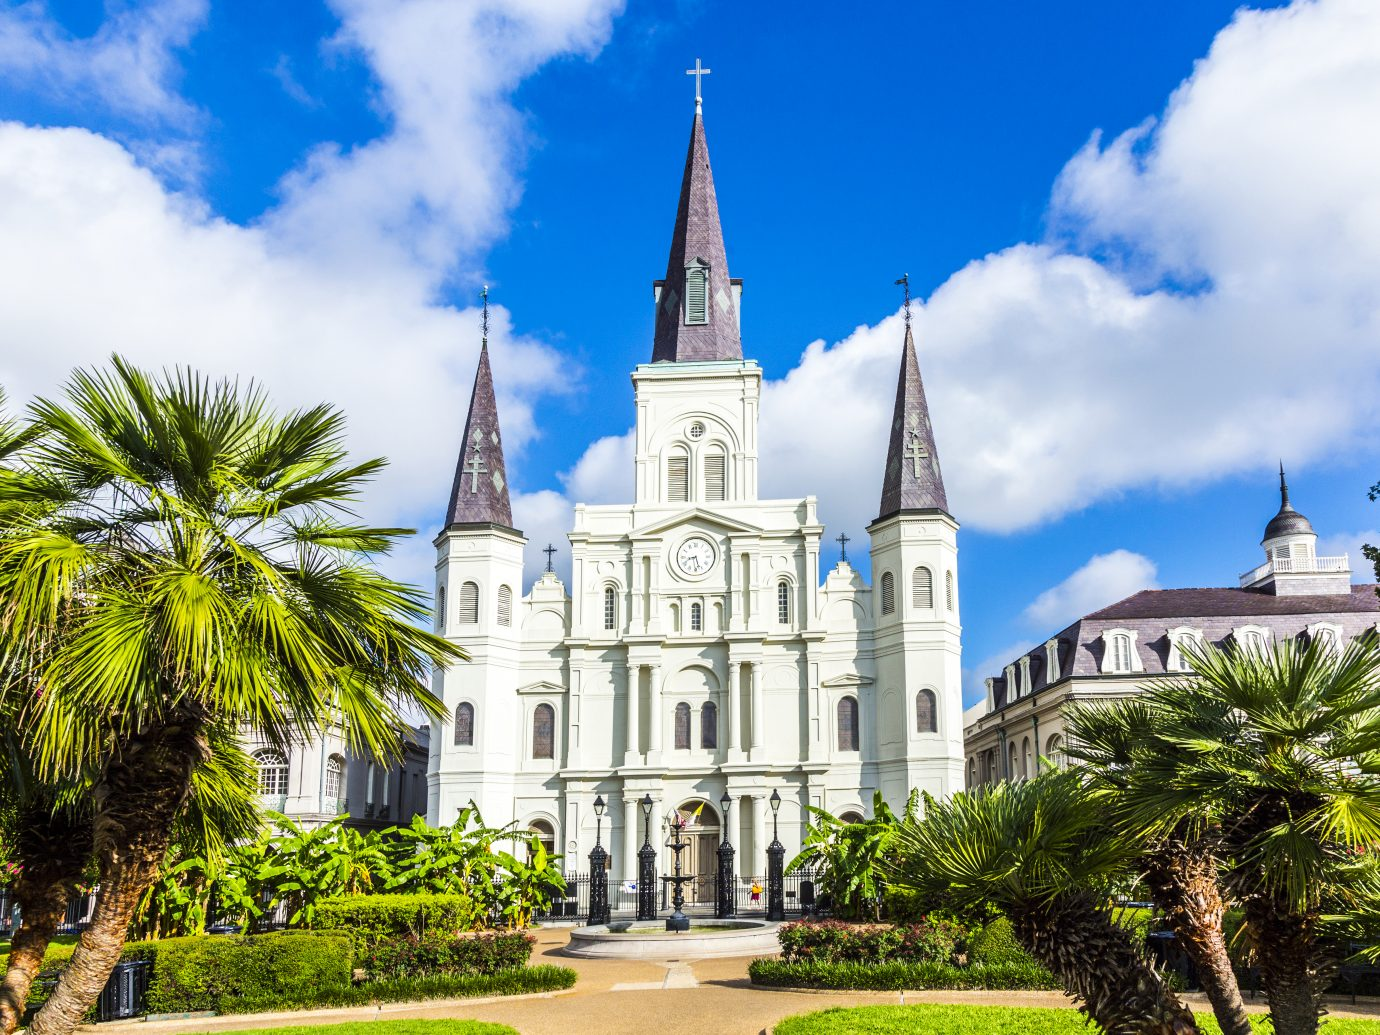 Saint Louis Cathedral in the French Quarter in New Orleans